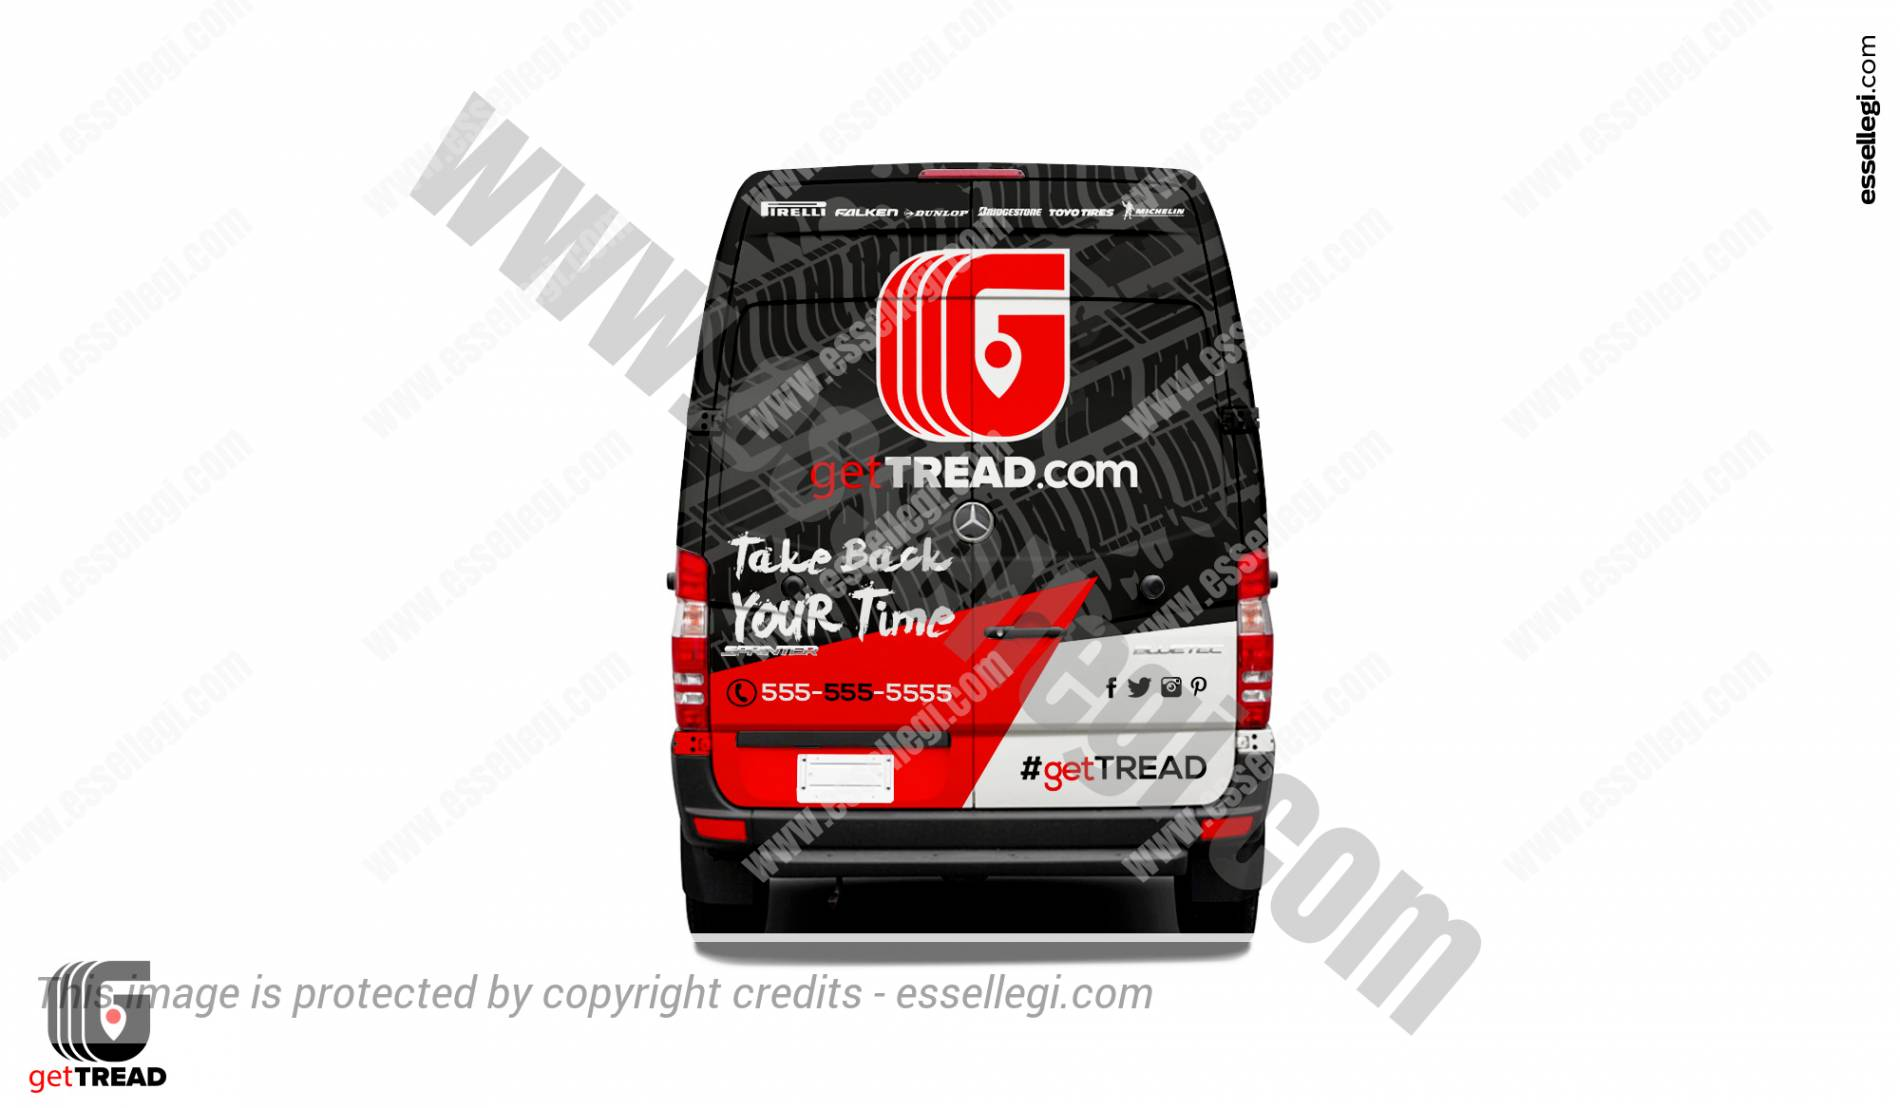 Mercedes Sprinter Wrap Design. Mercedes Sprinter 2500 | Van Wrap Design by Essellegi. Van Signs, Van Signage, Van Wrapping, Van Signwriting, Van Wrap Designer, Signs for Van, Van Logo, Van Graphic by Essellegi.